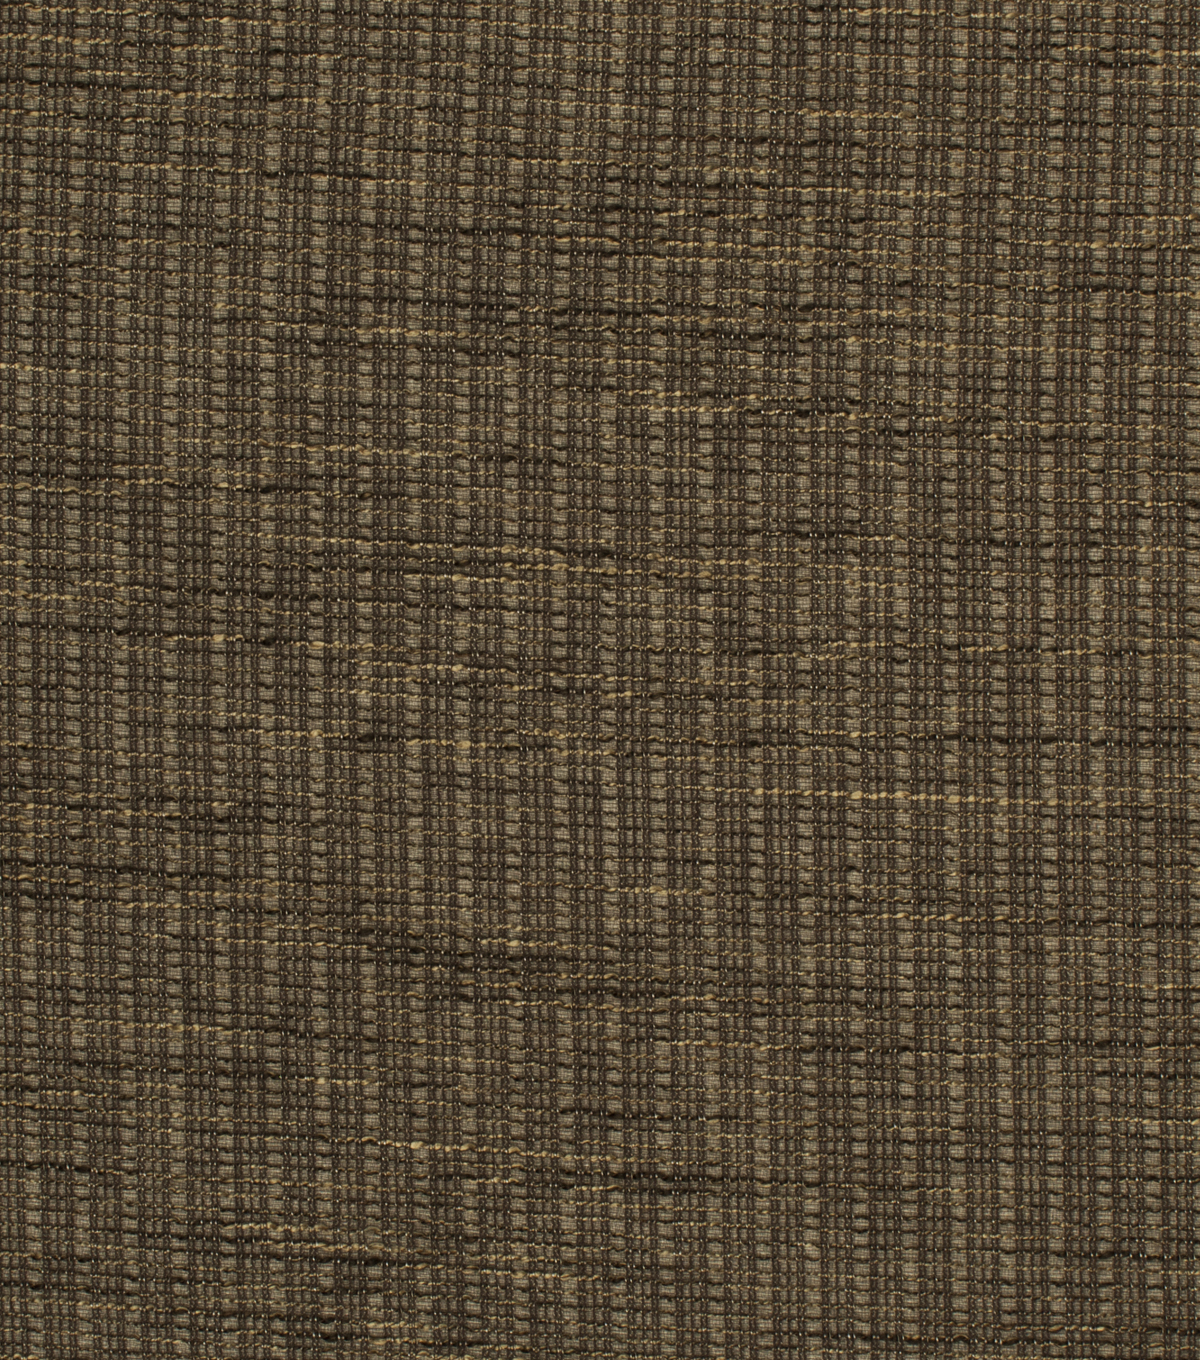 Home Decor 8x8 Fabric Swatch-Swavelle Millcreek Queen Coffee